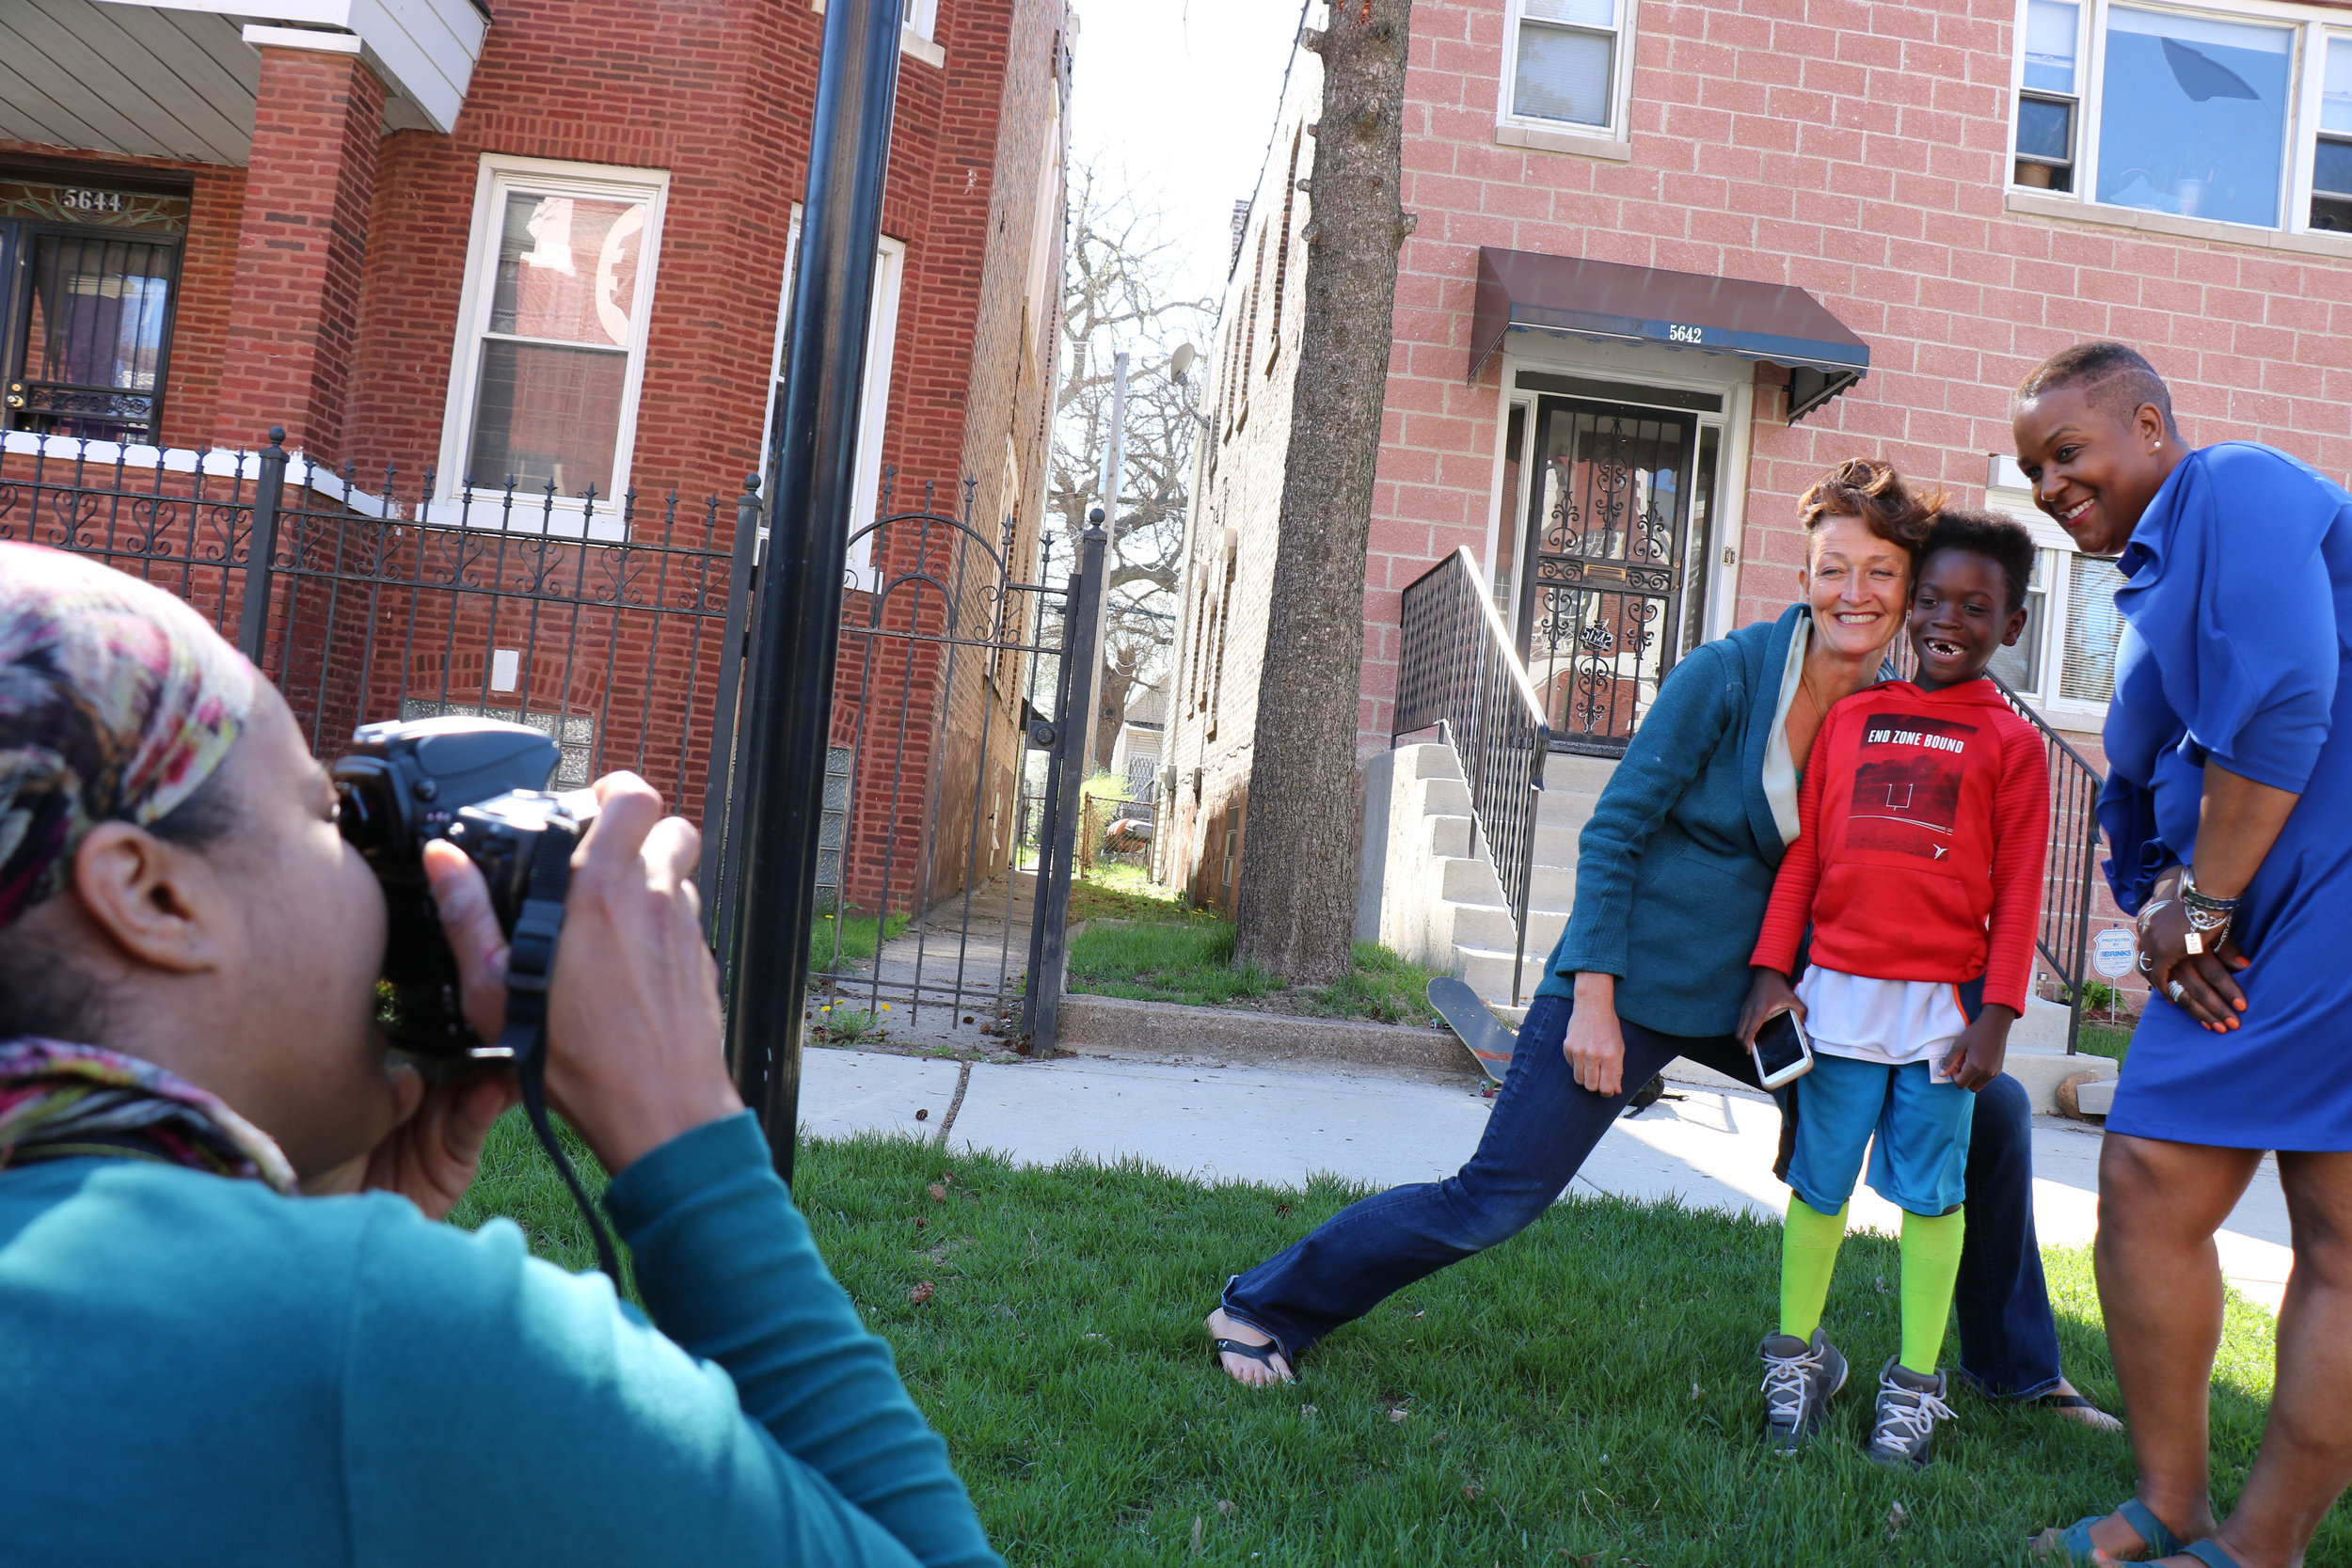 Folded Map Project participants Carmen Arnold-Stratton (right) of the 5600 block of S. Winchester in Englewood, and Brighid O'Shaughnessy (left) of the 6500 block of N. Winchester in Rogers Park embrace after their first visit in Arnold-Stratton's Englewood community. Courtesy of Tonika Lewis Johnson.